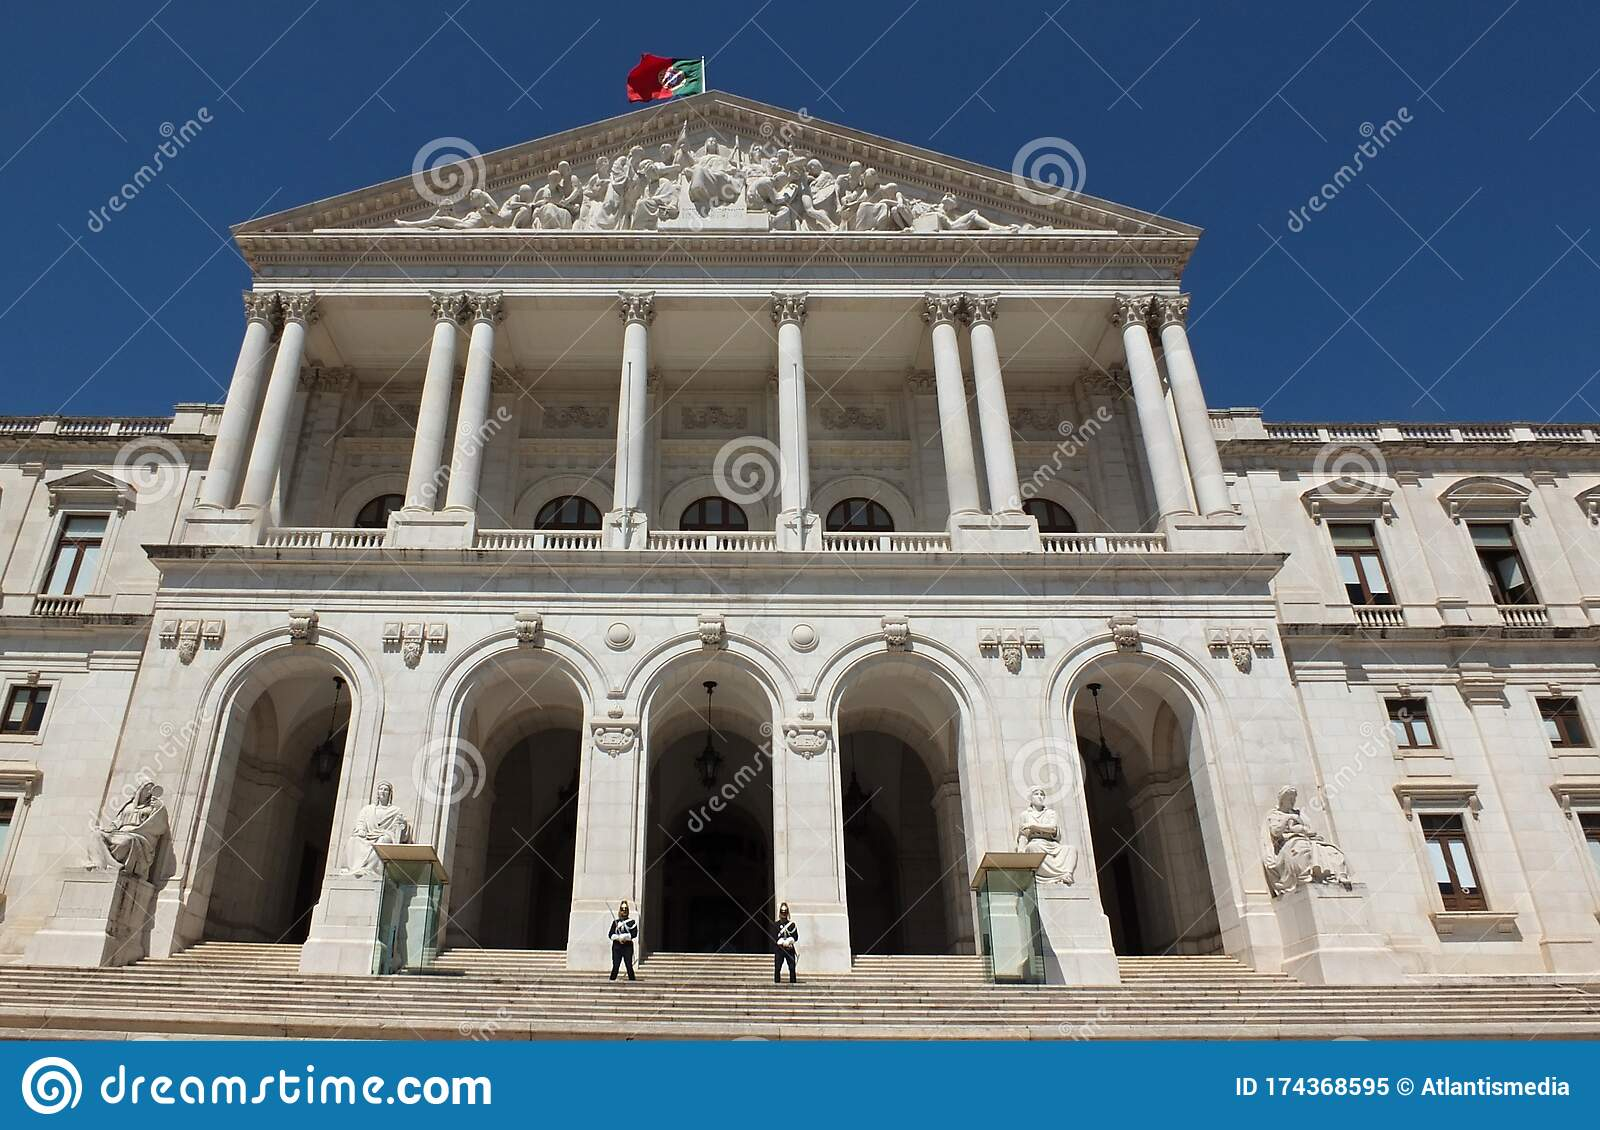 Historical Facade Of The Portugal Government In Lisbon Portugal Stock Image Image Of Portugal Lisbon 174368595